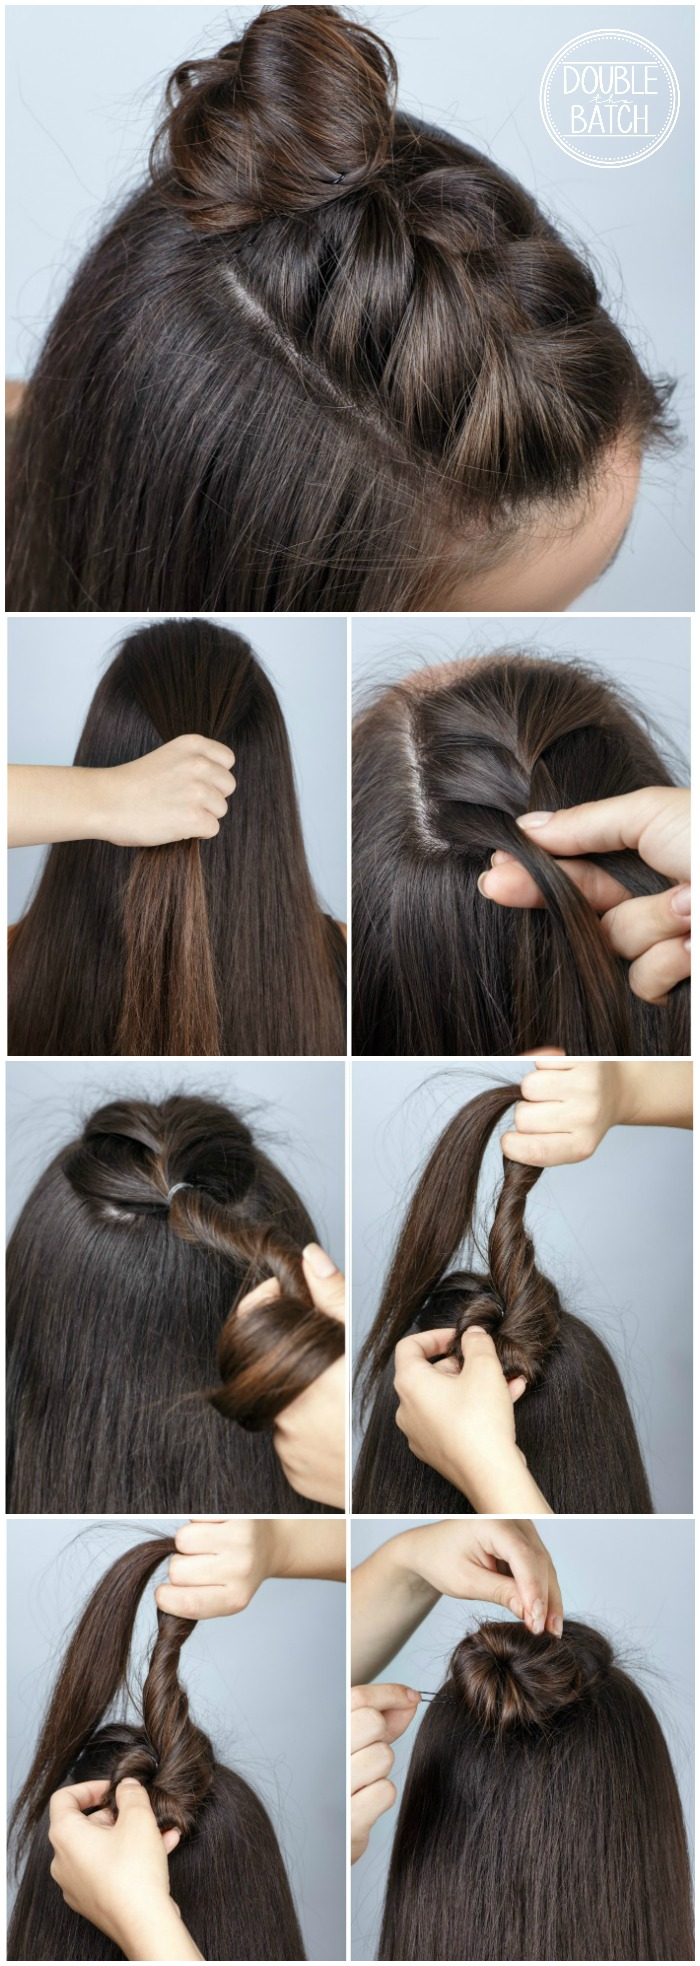 4 Ways to Change Your Hair Without Chopping it All Off | Her